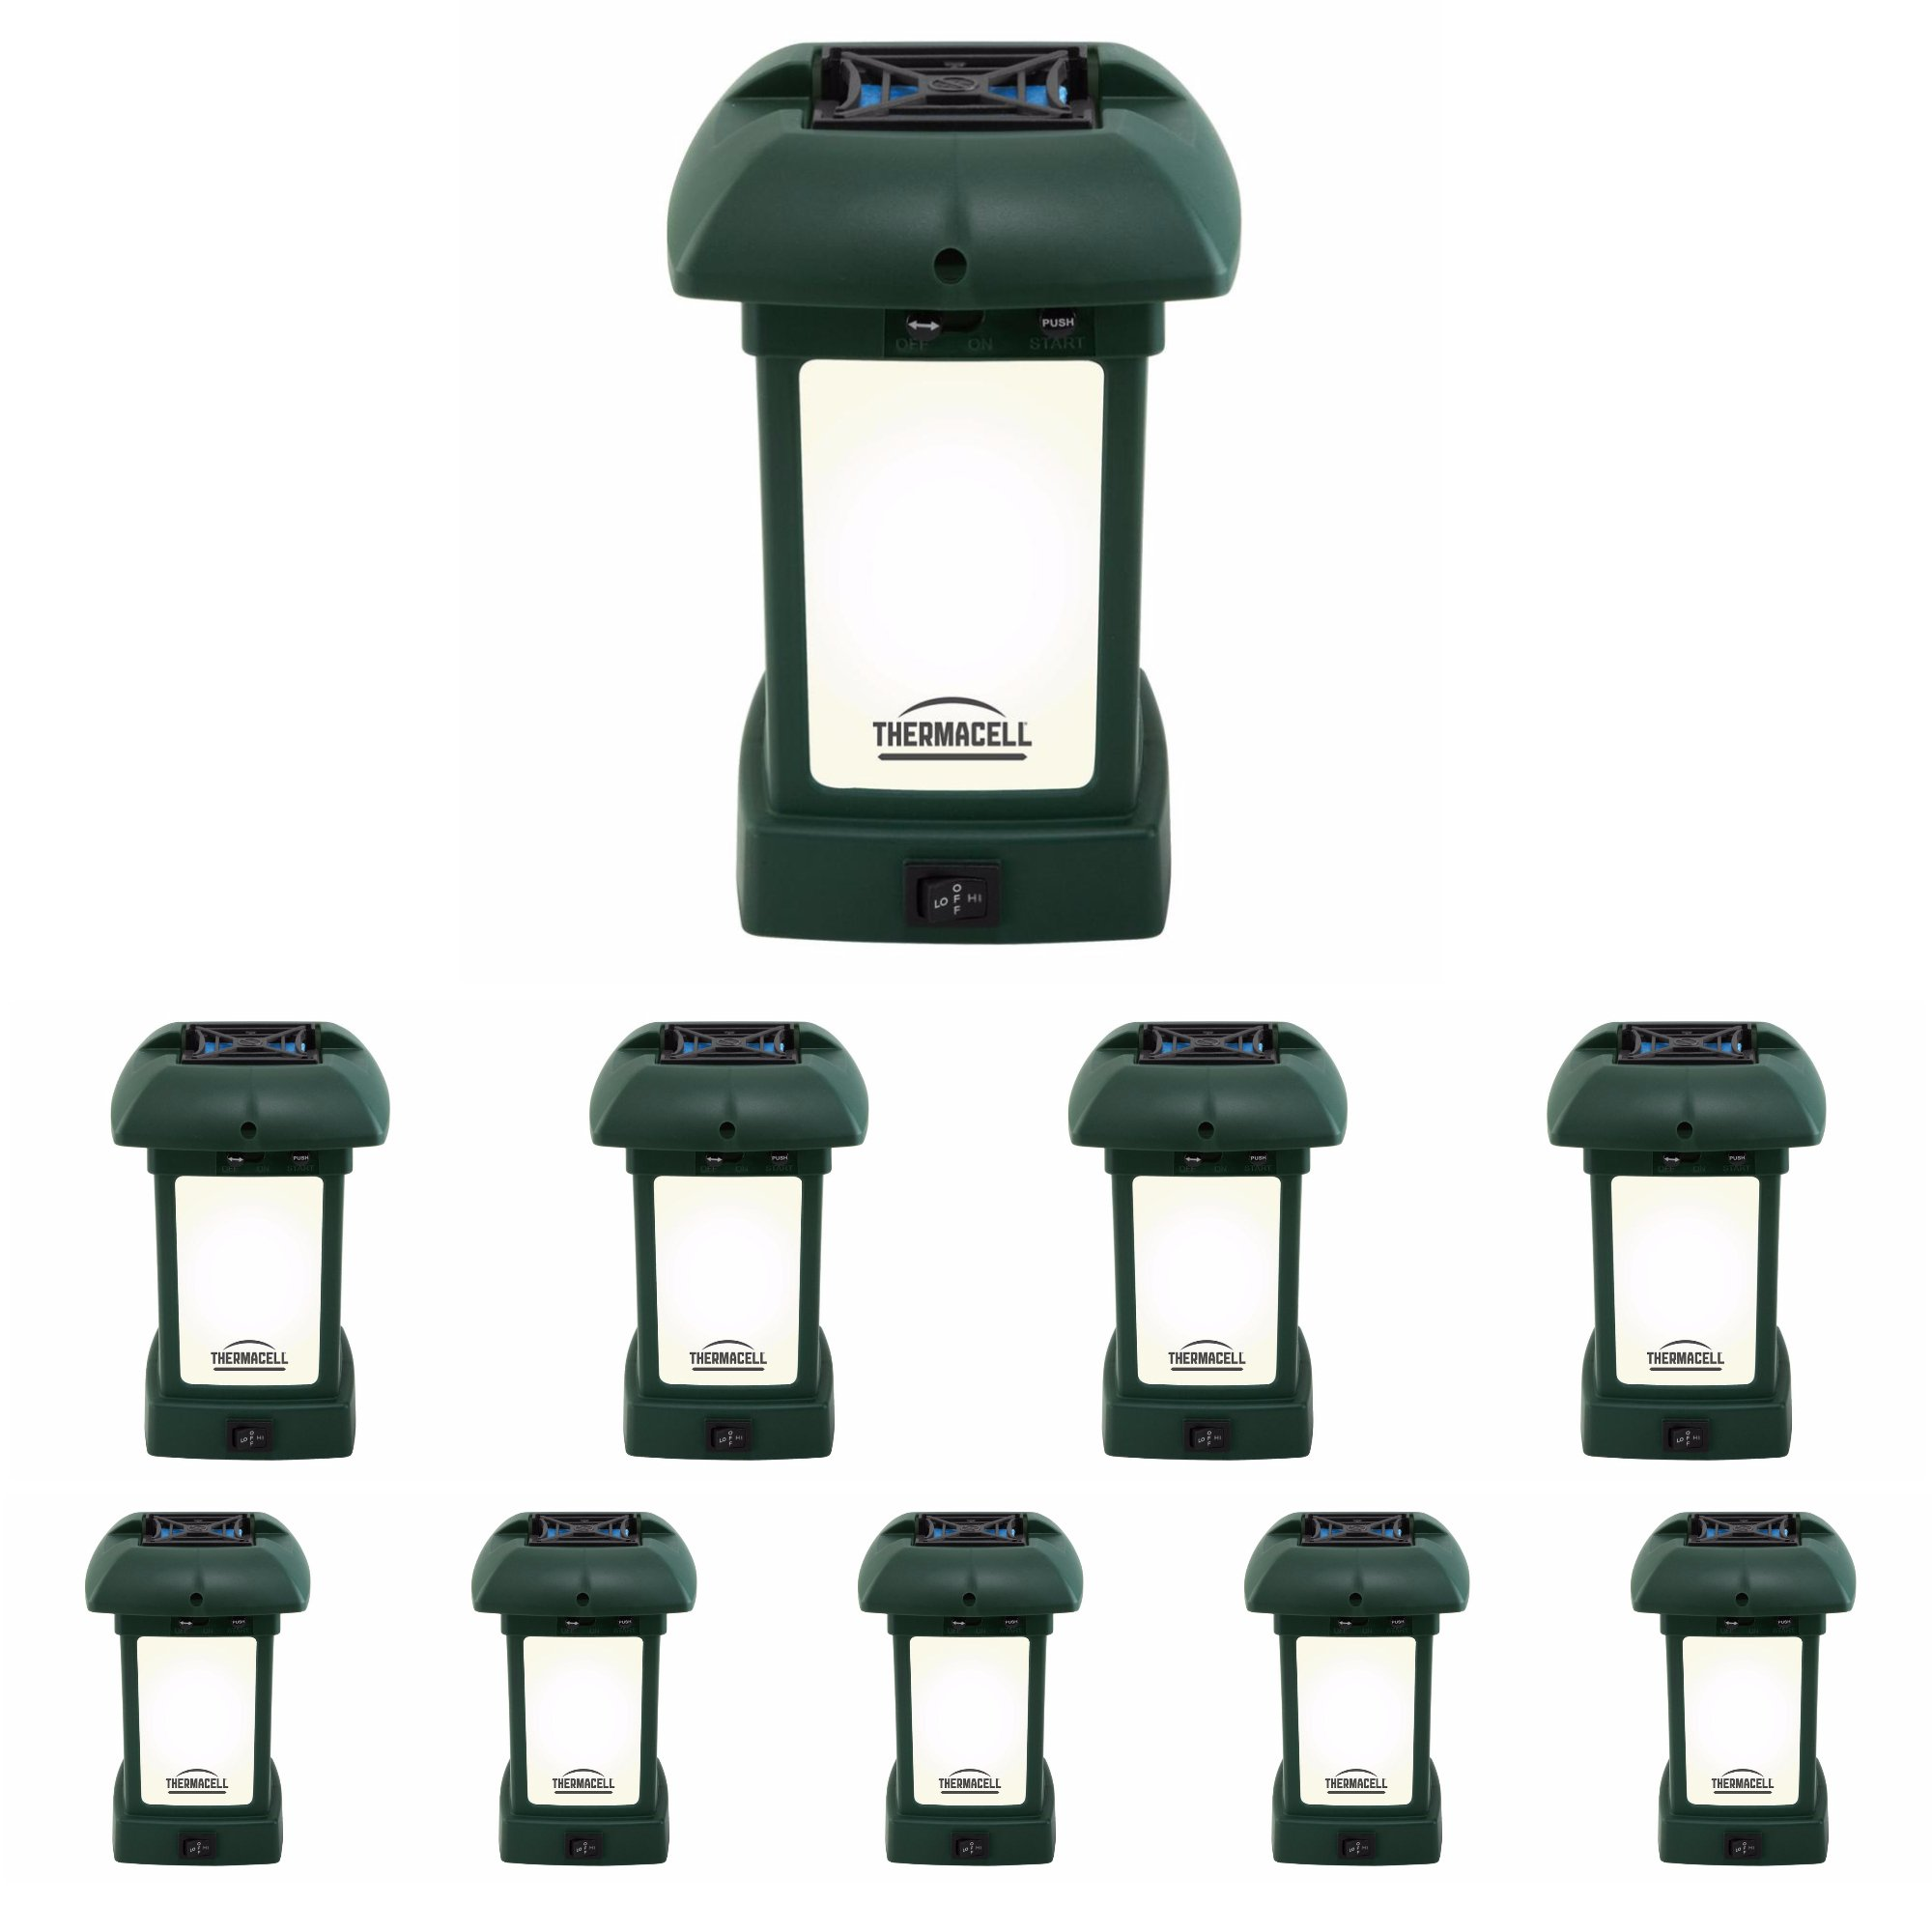 ThermacellMR-9L OutdoorMosquitoRepeller plusLantern (10-Pack) - Each protects a 15x15 ft. area)